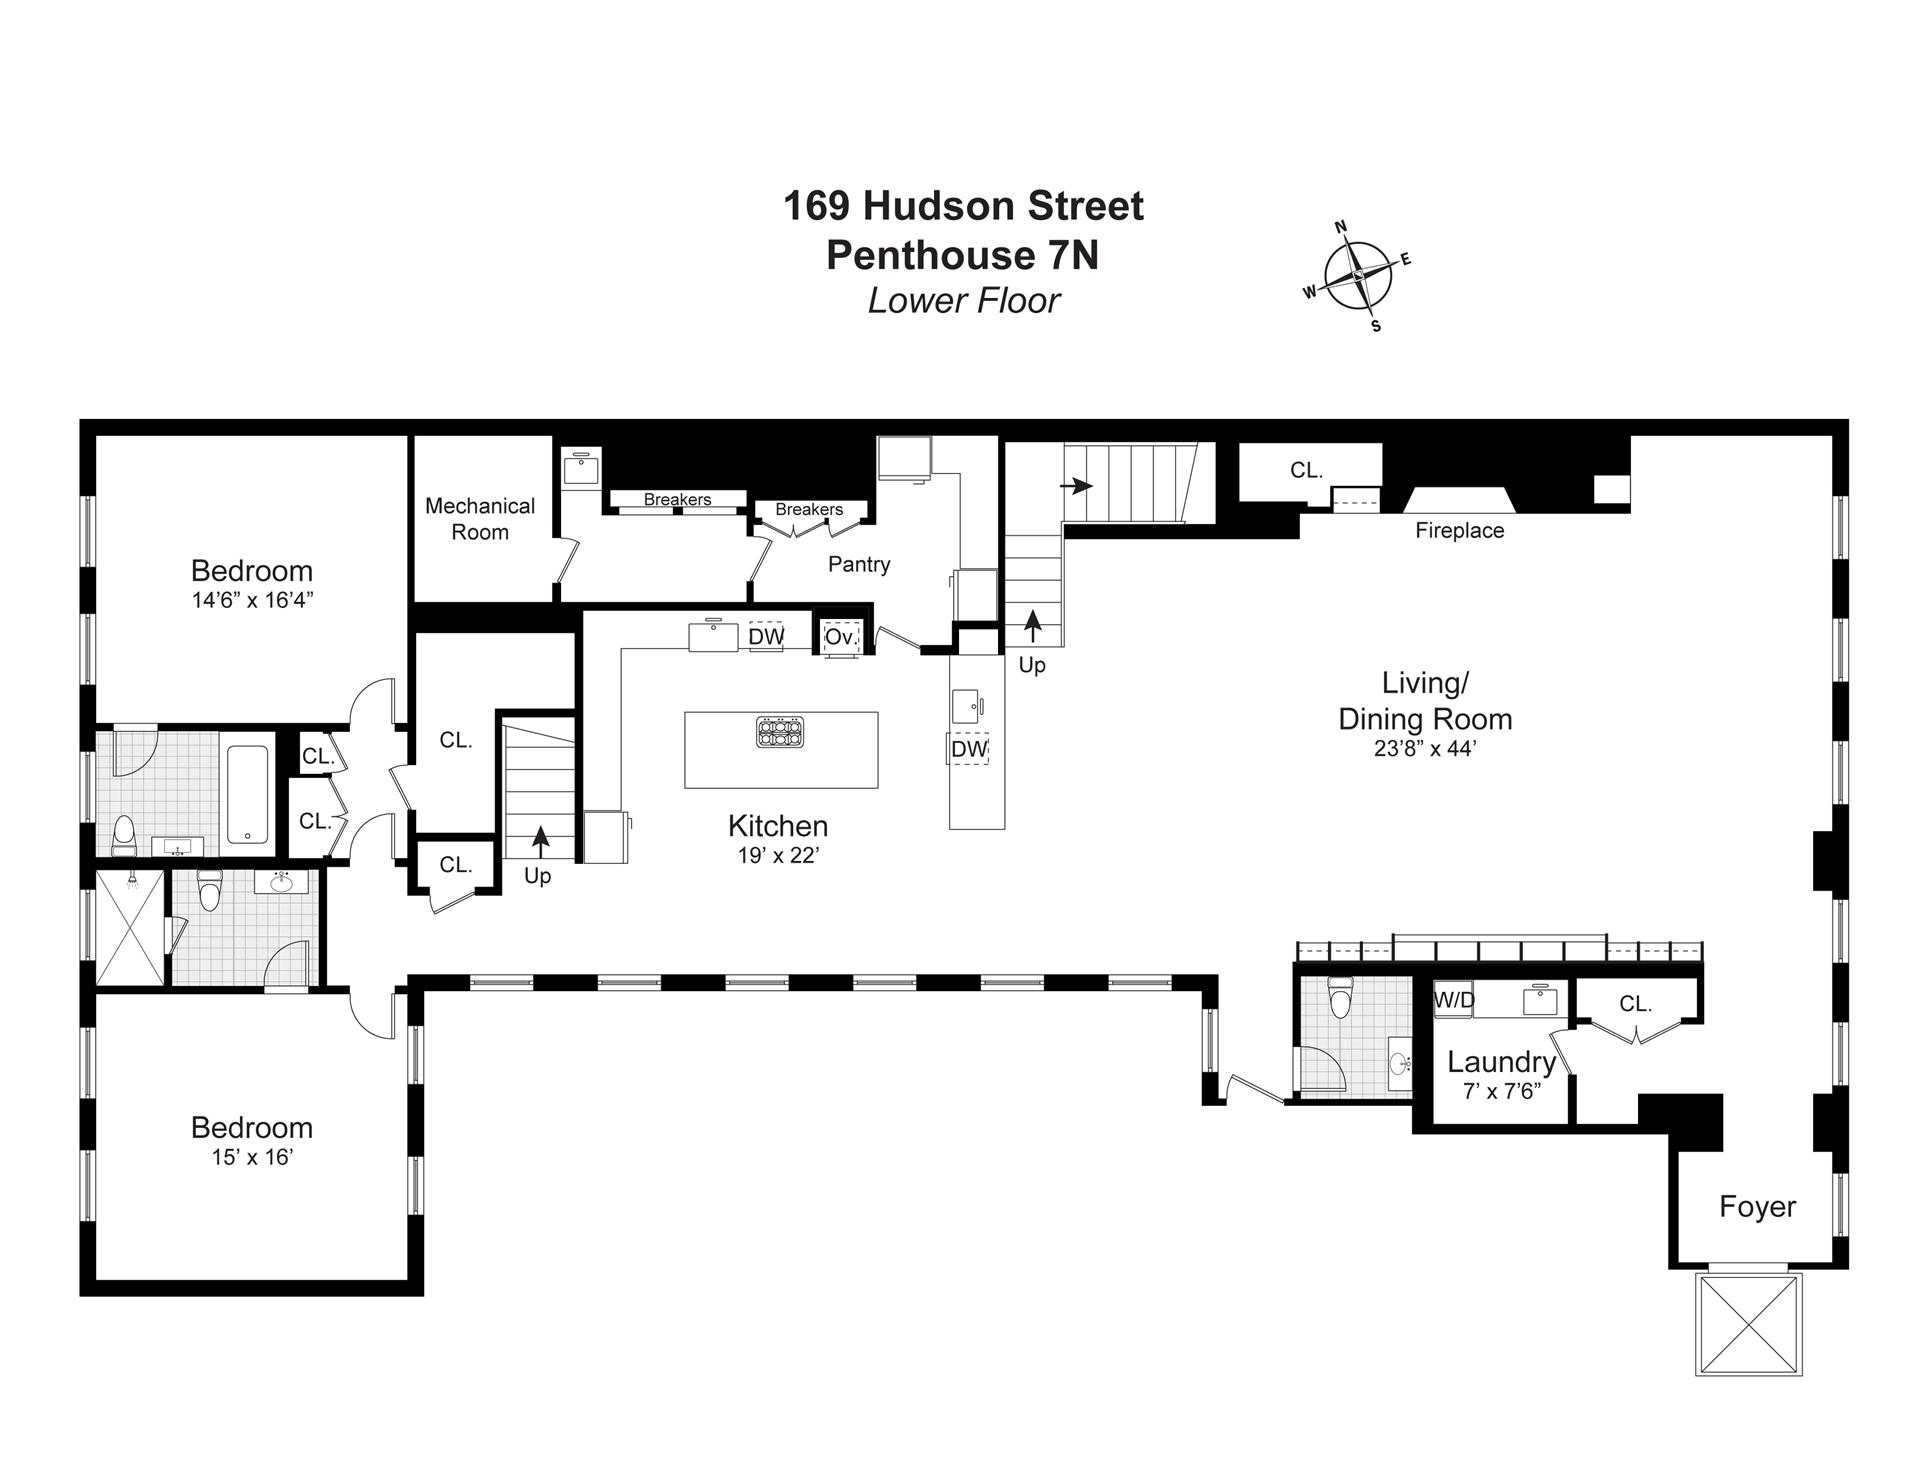 Floor plan of The Roebling Building, 169 Hudson St, PH7N - TriBeCa, New York